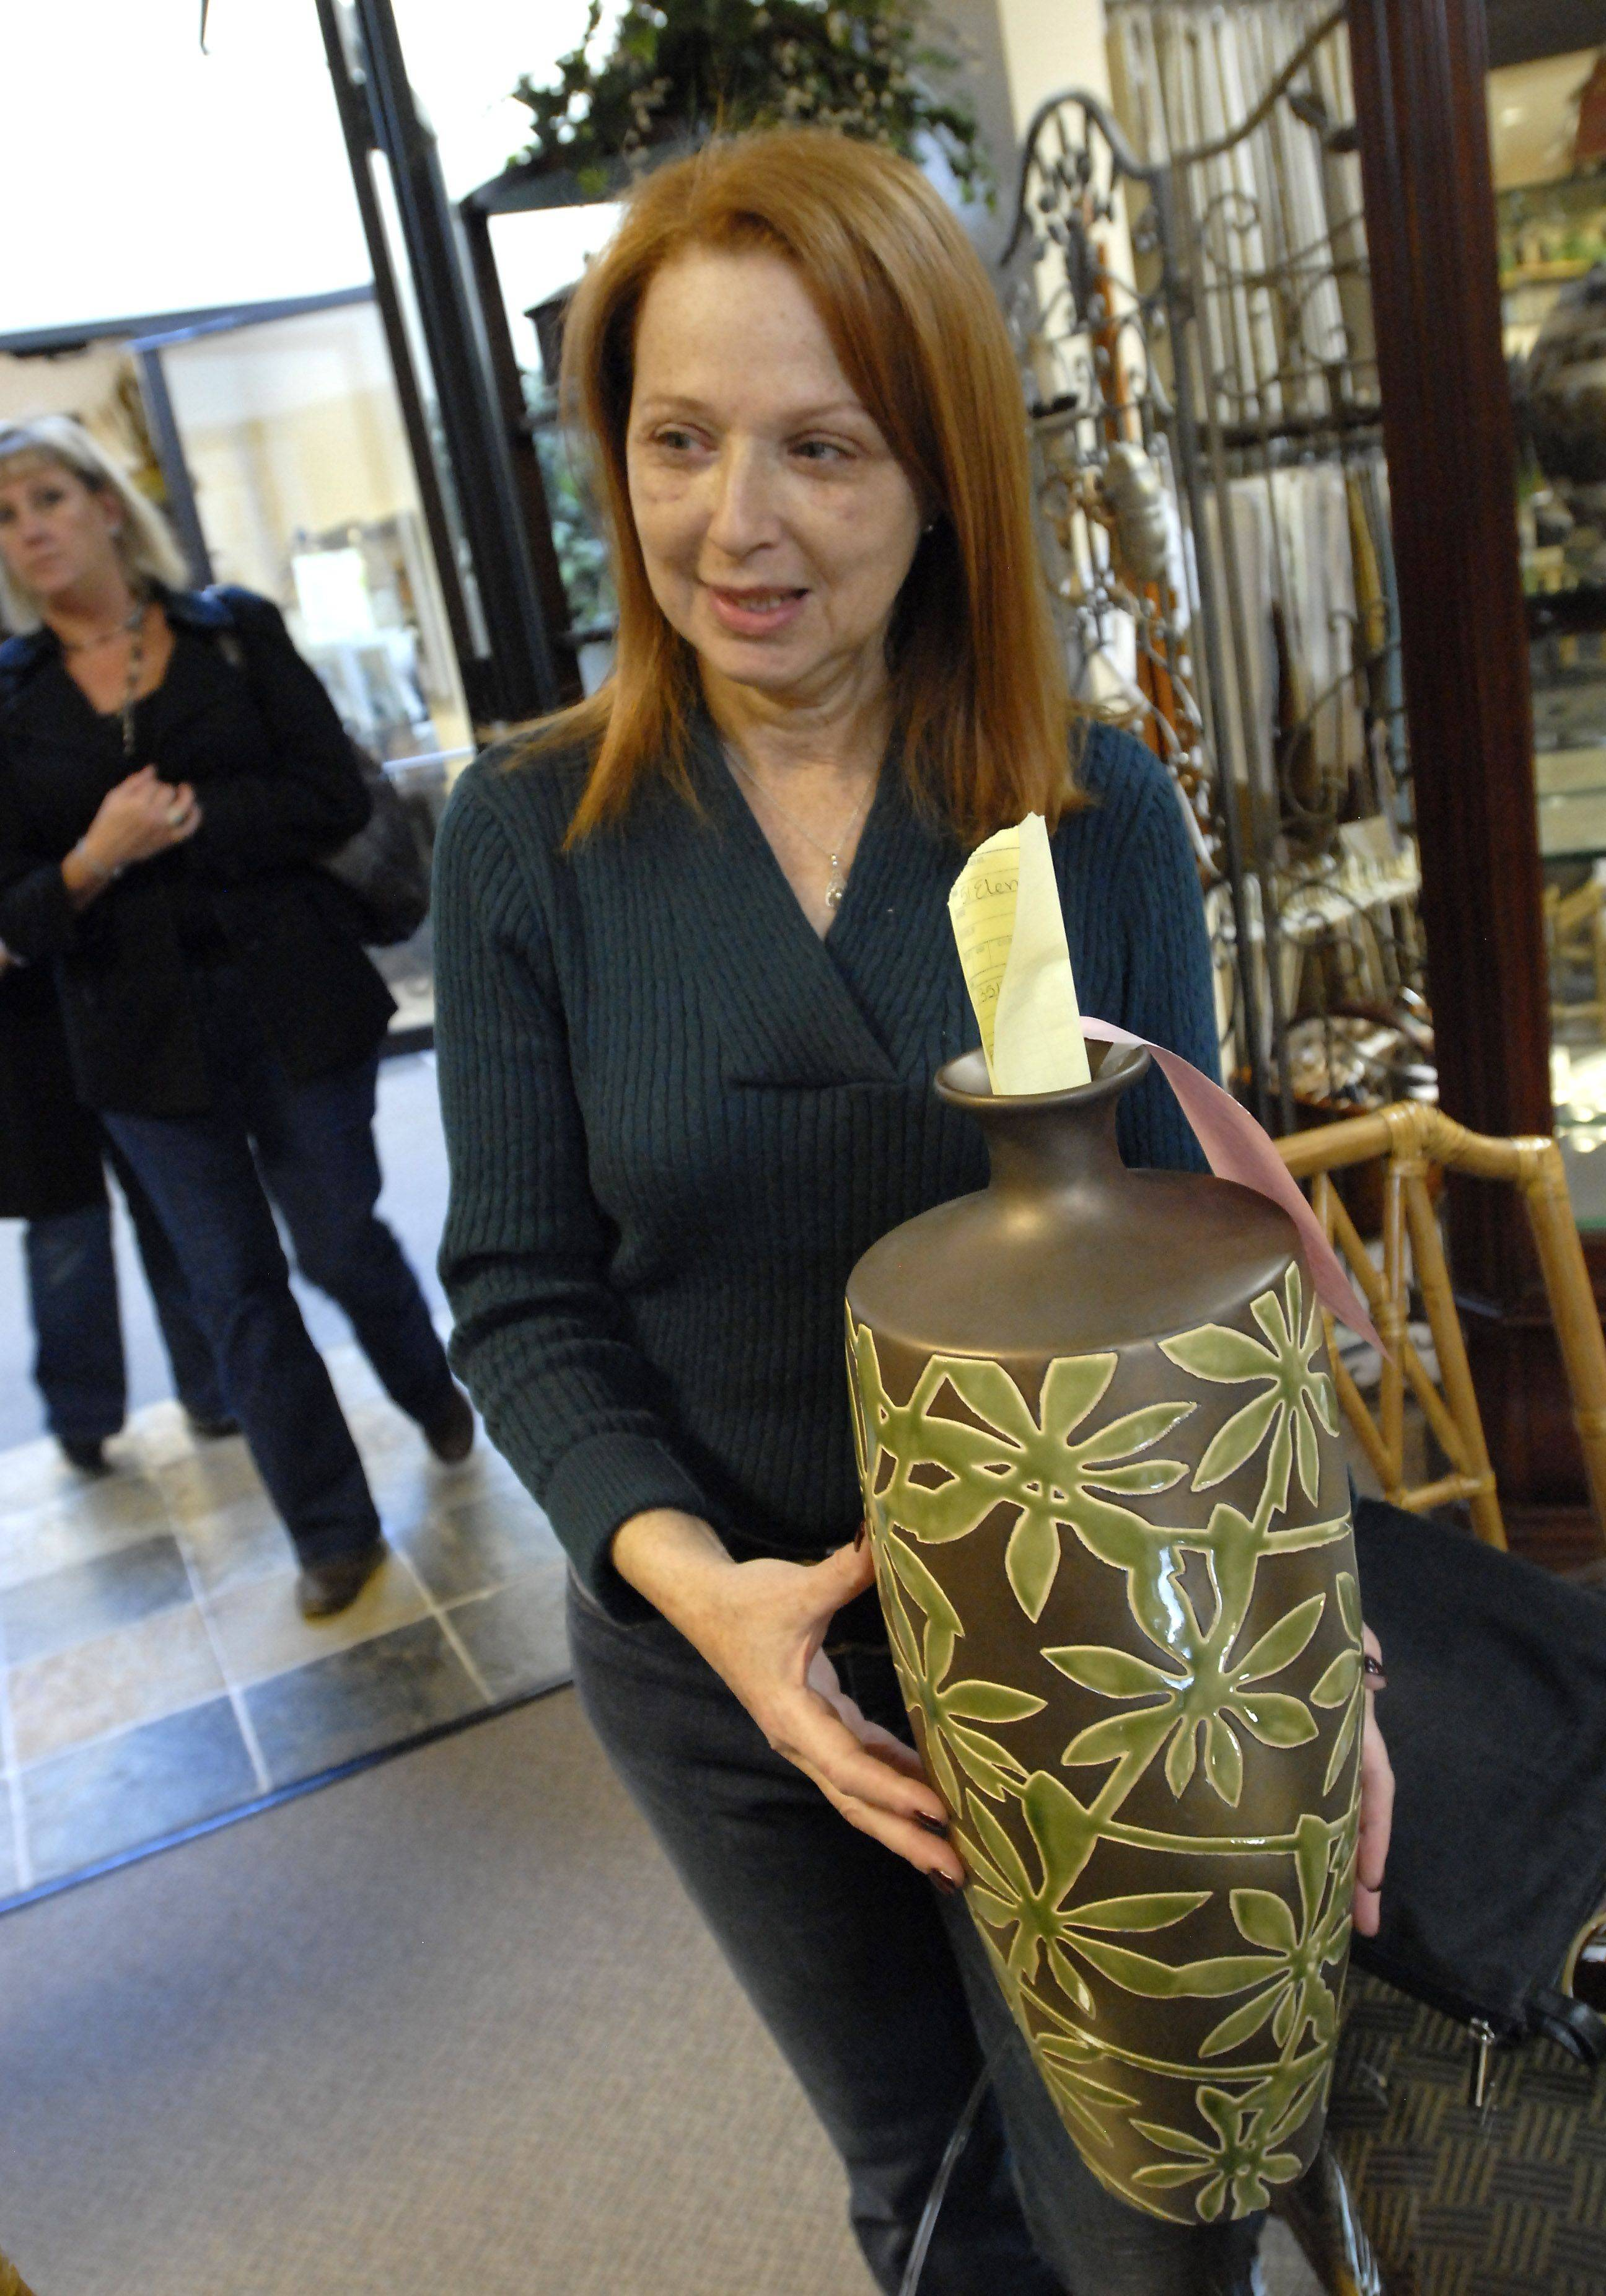 Designer Eva Landesman of 51 Elements in Buffalo Grove was thrilled with this vase she found for a client at the Chicago Design Team shop.